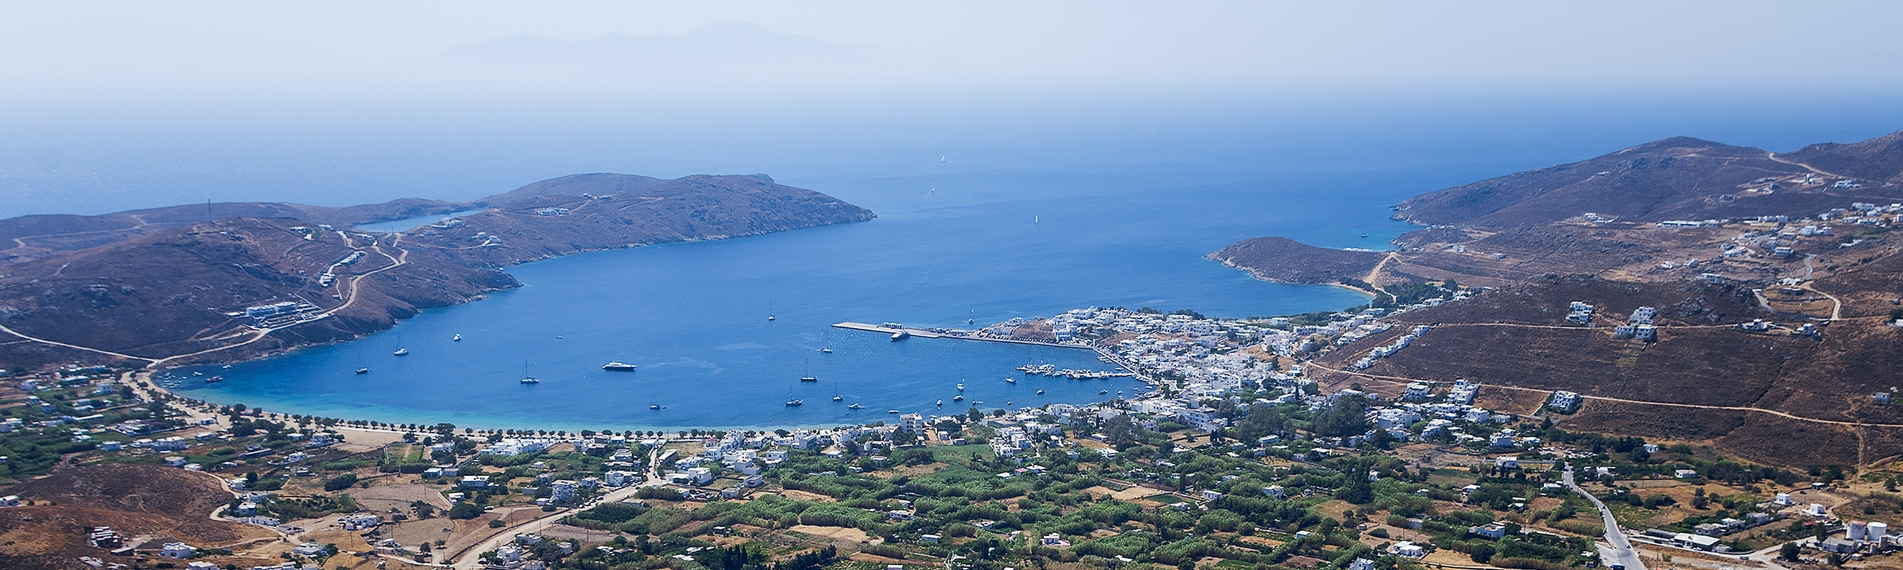 View of the Gulf of Serifos in the Cyclades islands